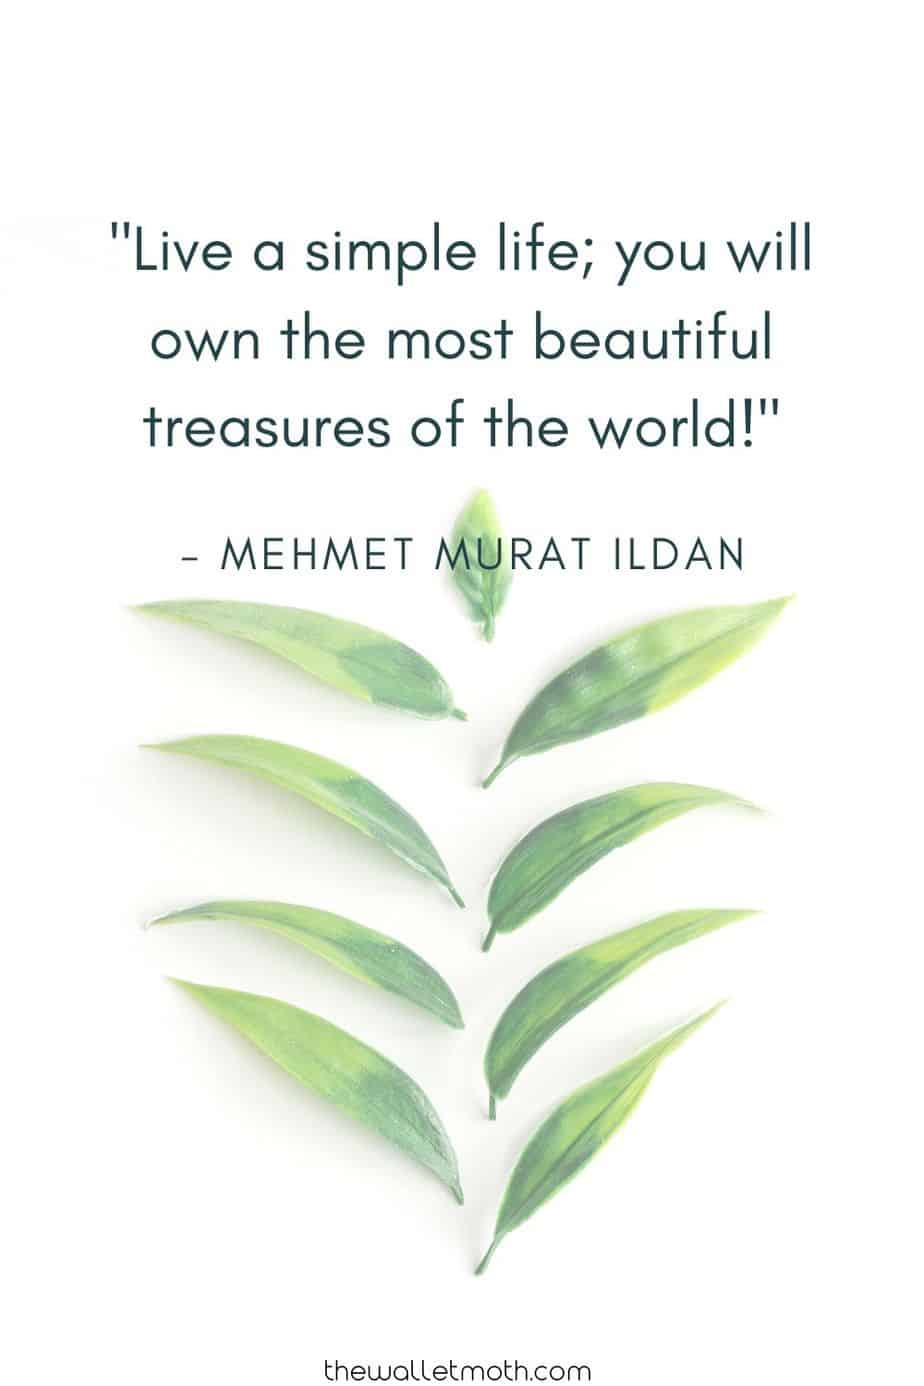 """Live a simple life; you will own the most beautiful treasures of the world!"" - Mehmet Murat Ildan"